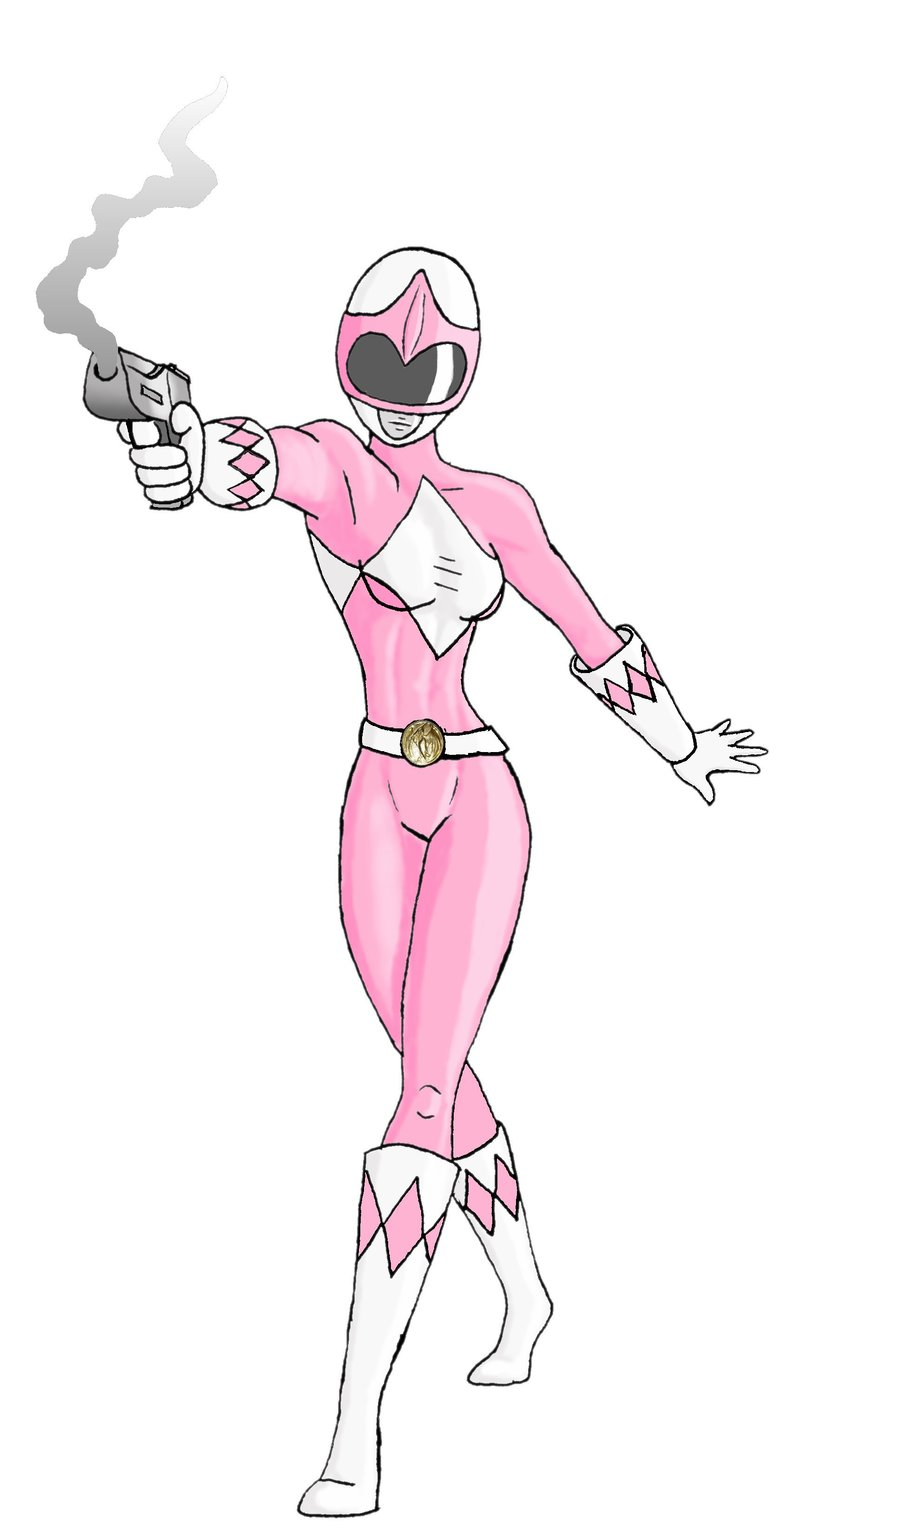 900x1532 pink power rangerdesert eagle by jakestarling on deviantart